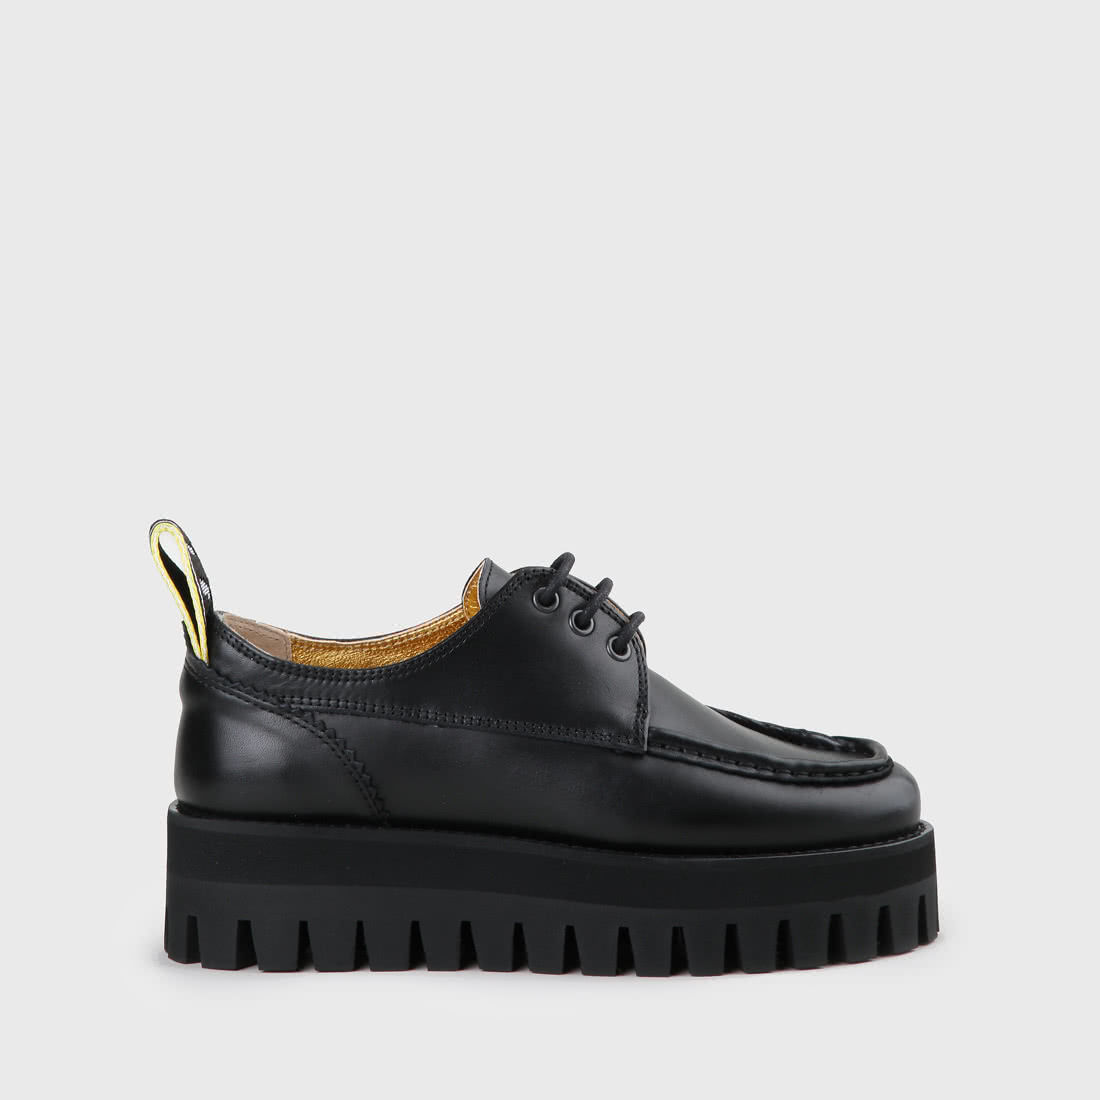 35c3c1c462a Bianca loafer nappa leather black